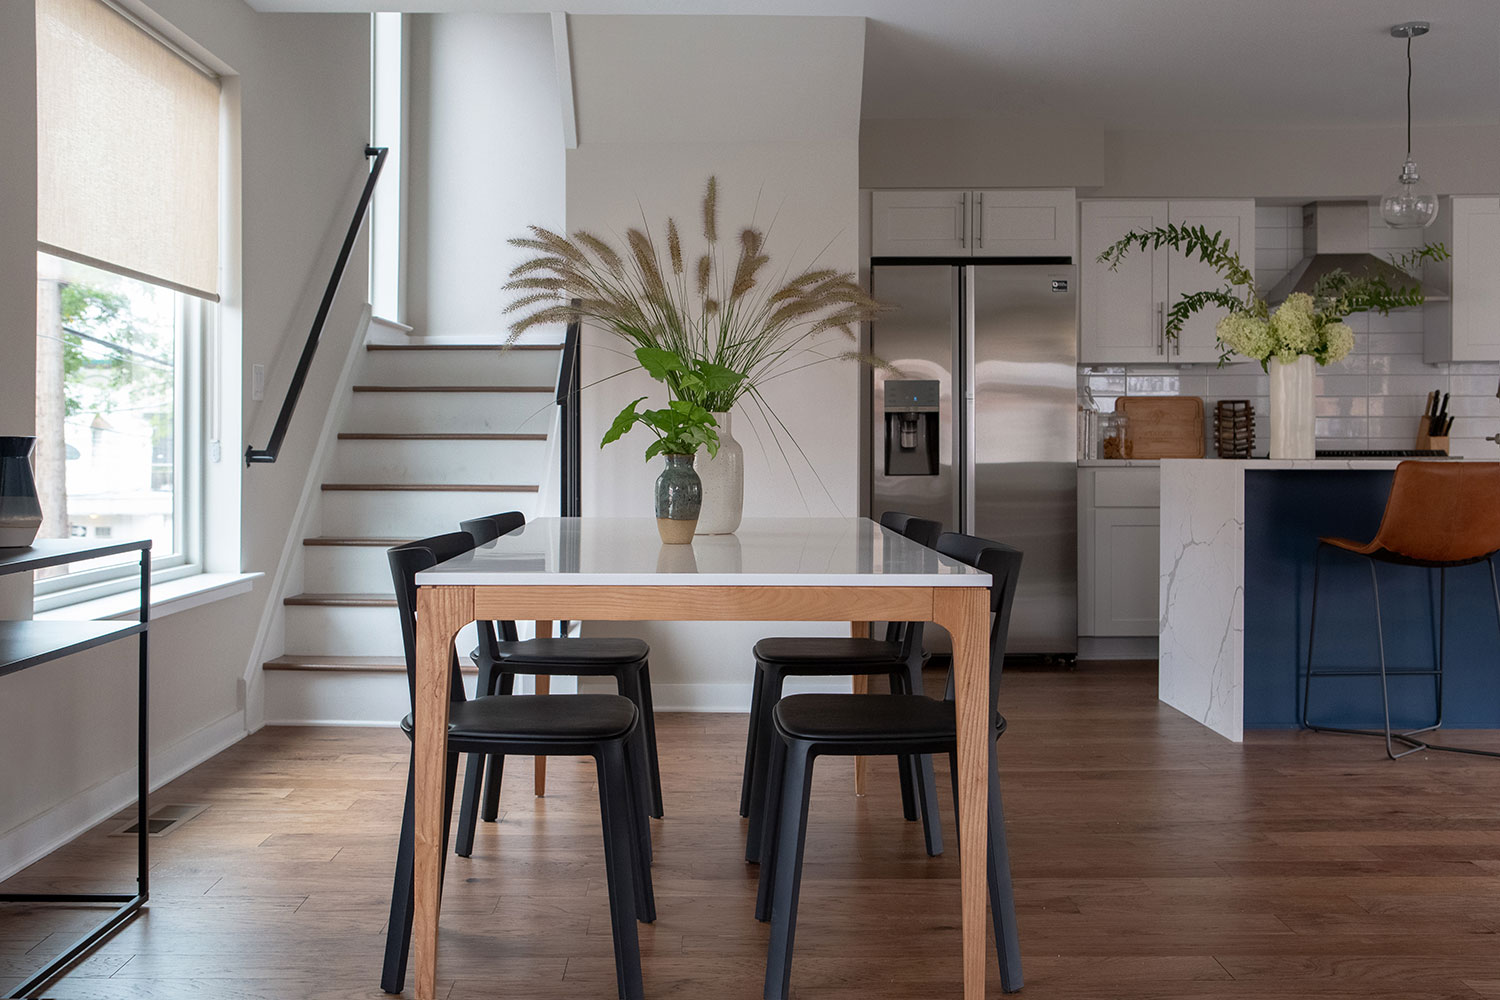 Newlywed Dining Room and Kitchen